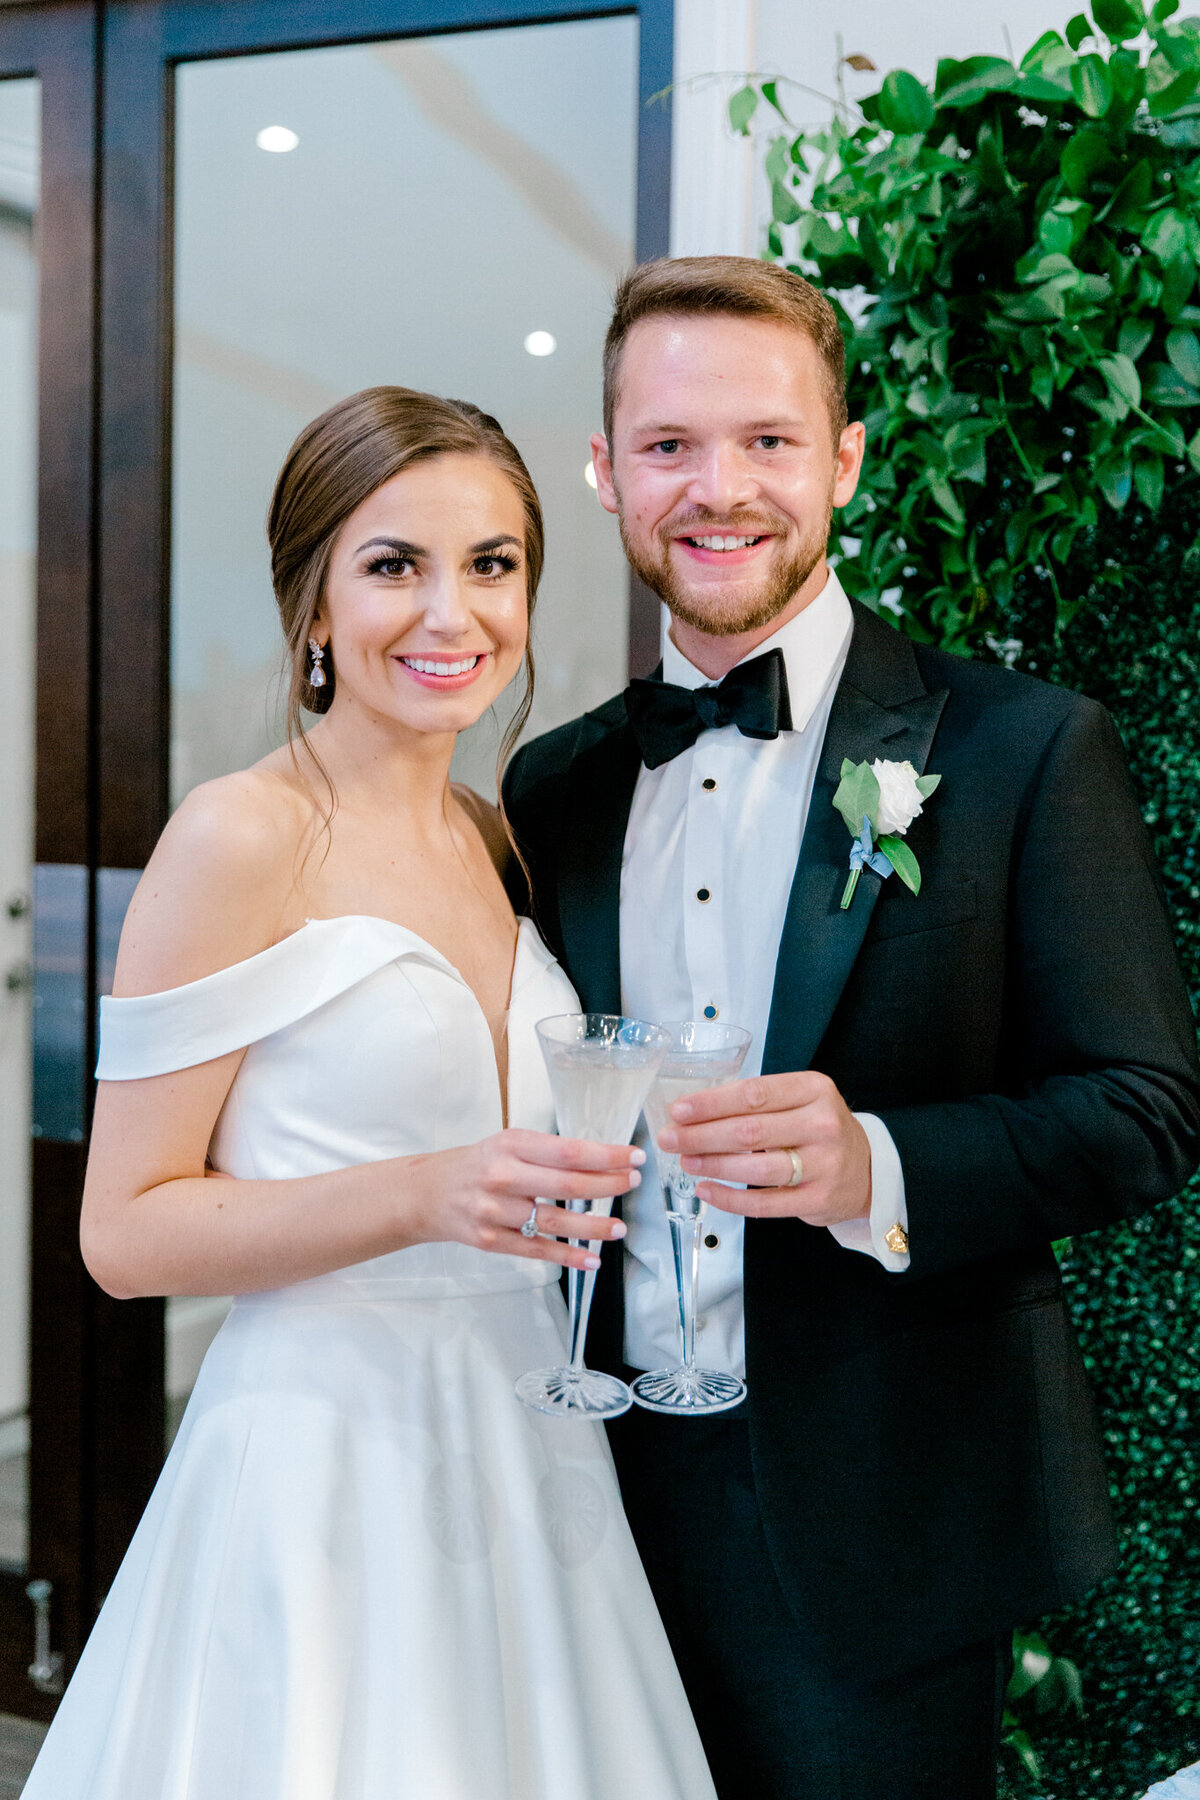 Lexi Broughton & Garrett Greer Wedding at Dove Ridge Vineyards | Sami Kathryn Photography | Dallas Wedding Photography-190